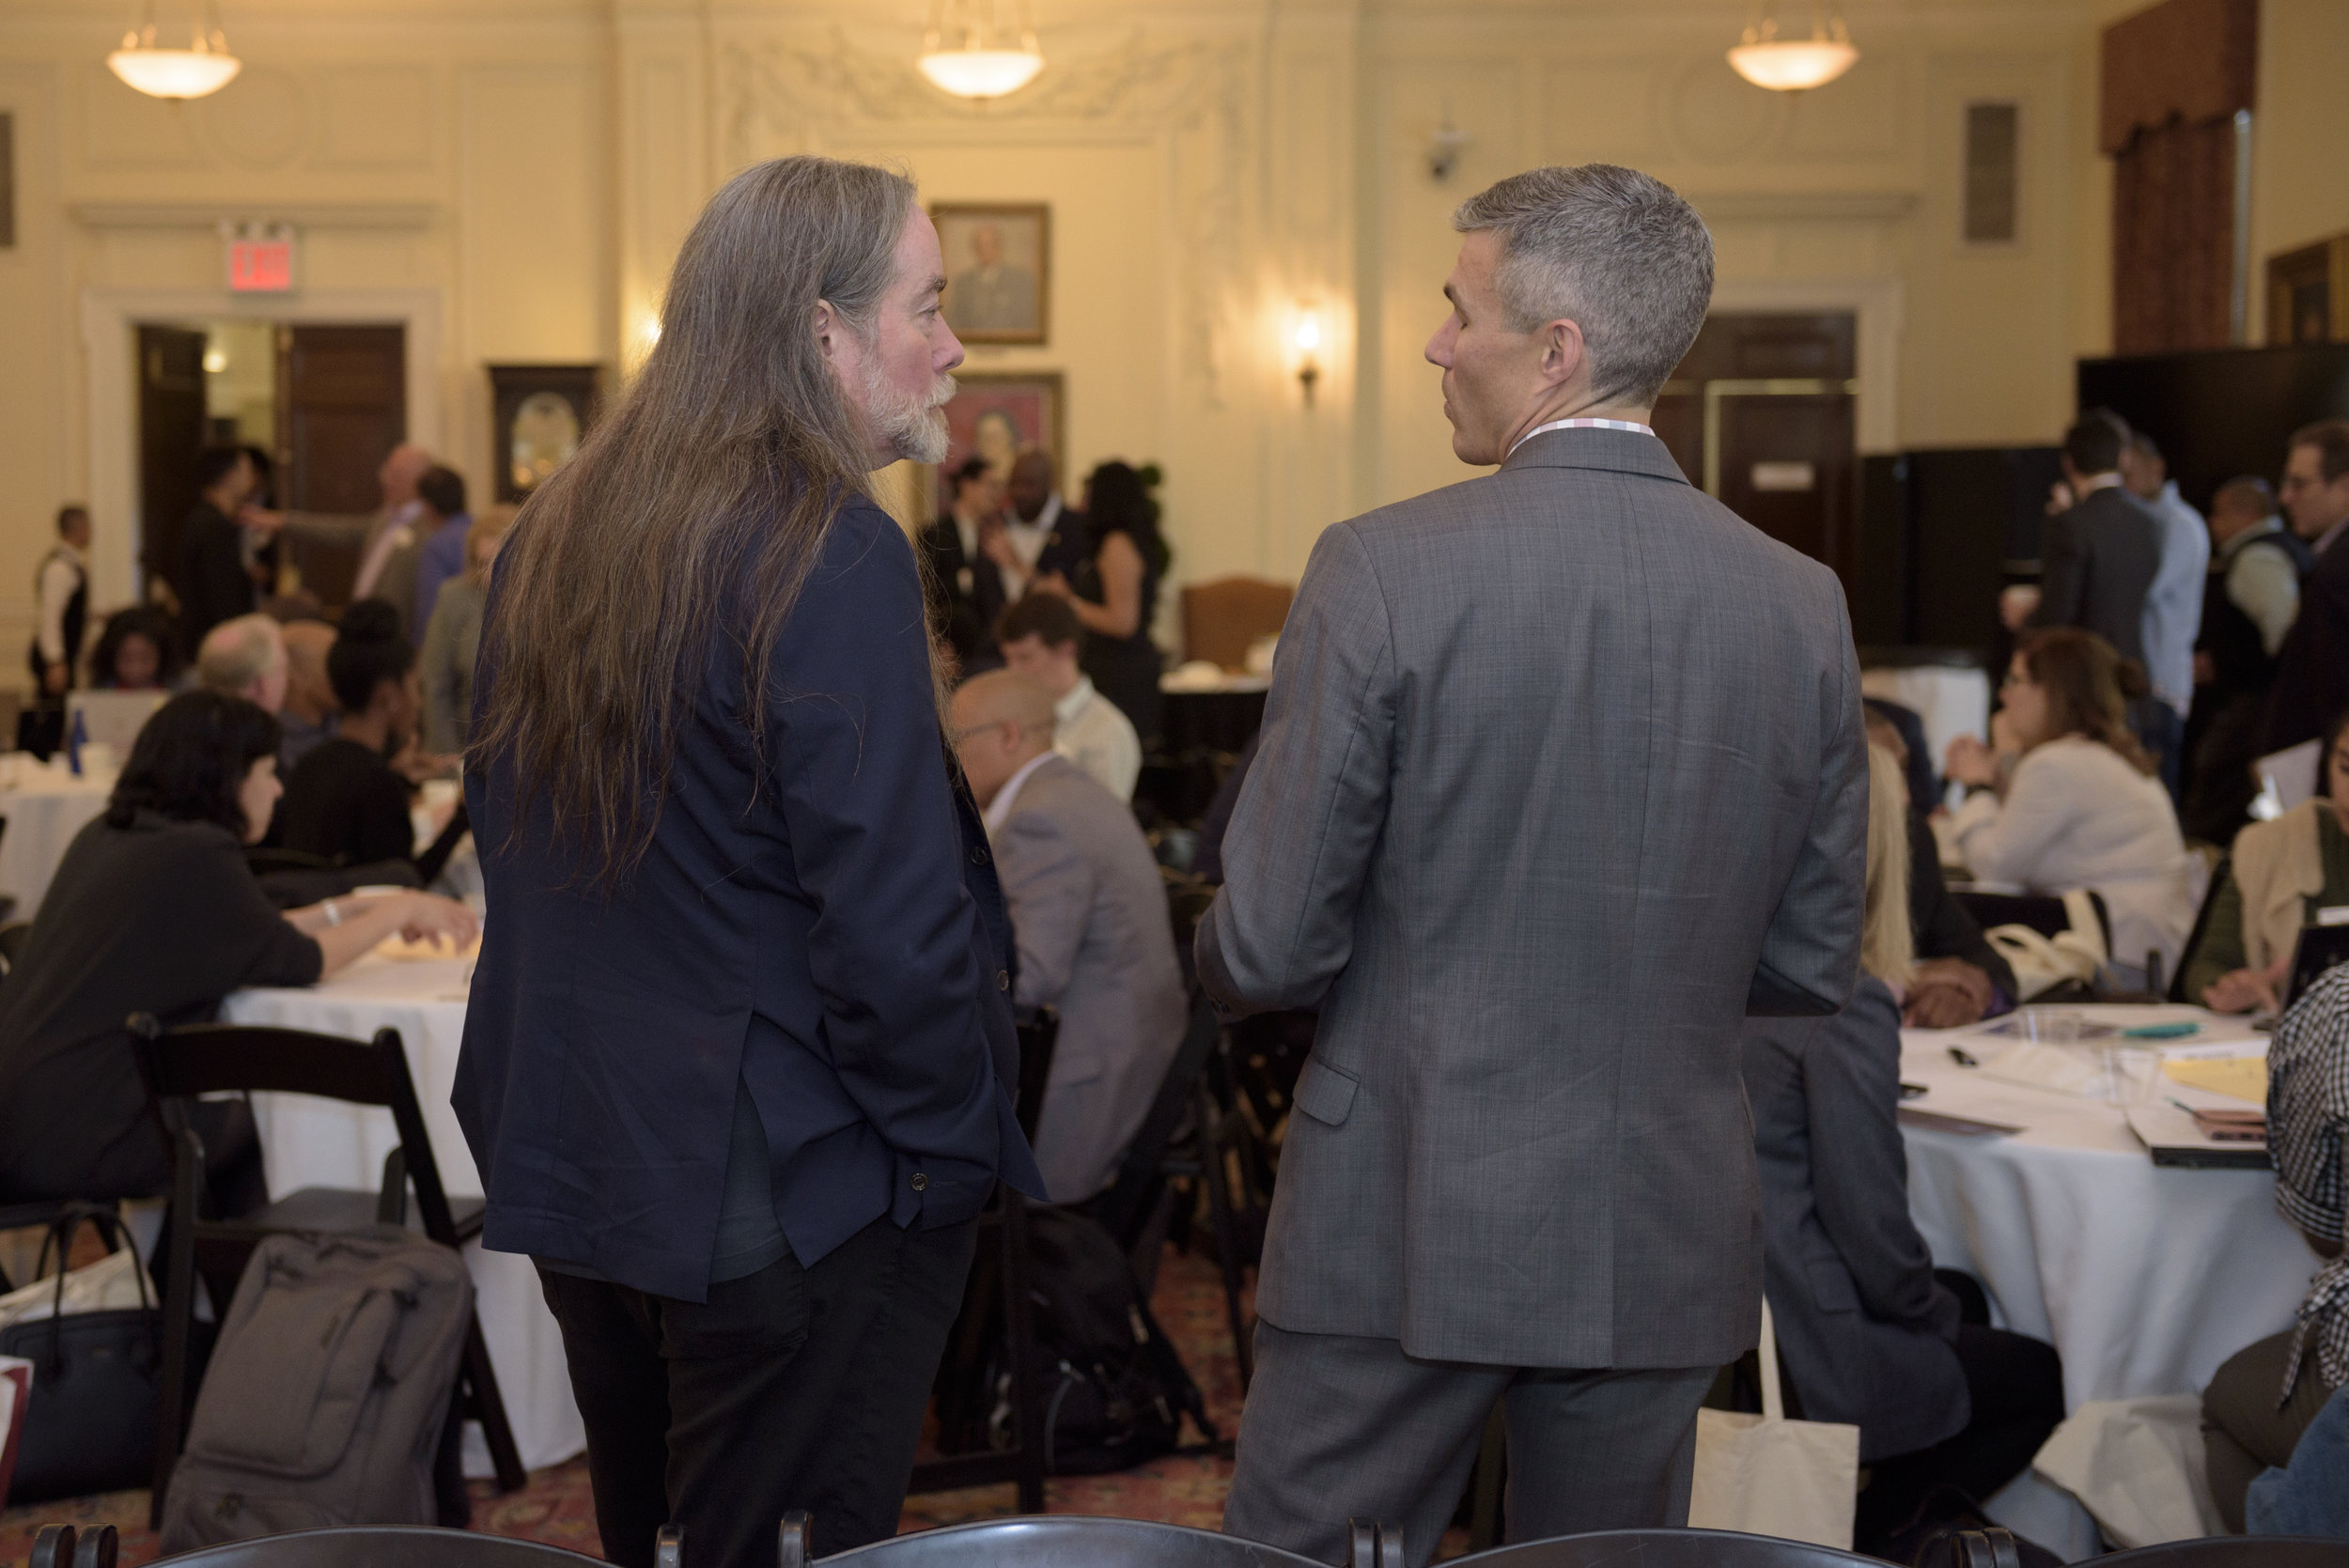 David Kennedy of the National Network for Safe Communities in conversation with Alex Trouteaud of Arnold Ventures.